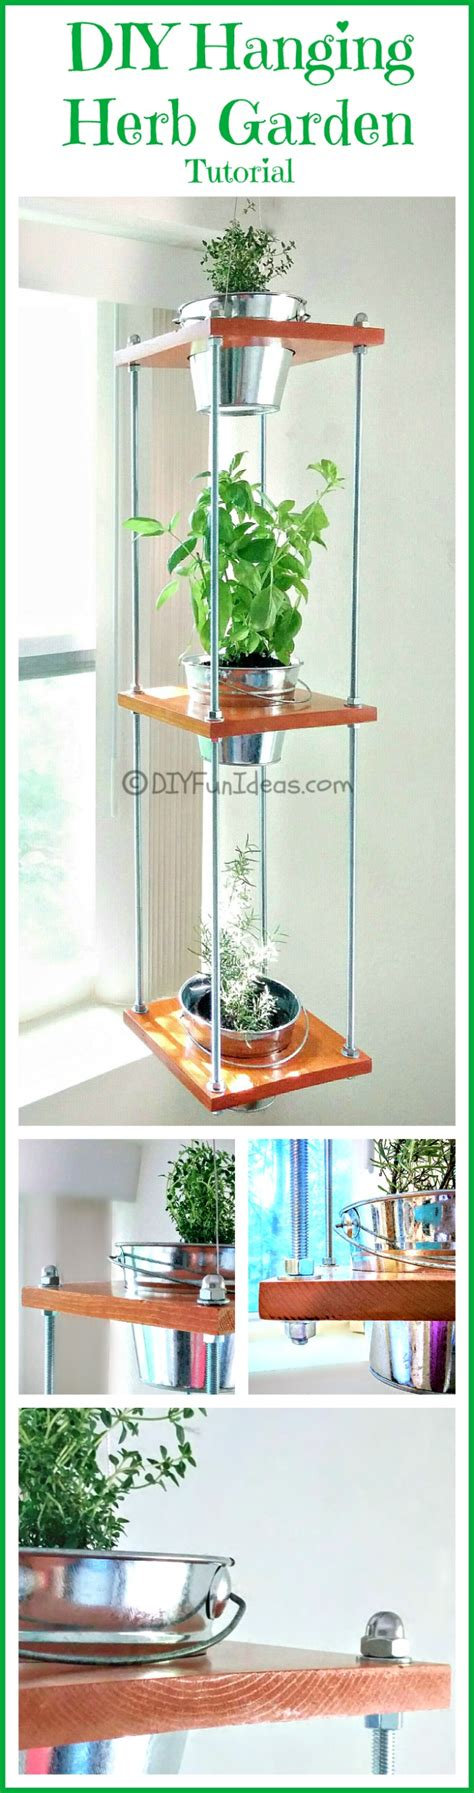 diy hanging herb garden diy hanging herb garden industrial style do it